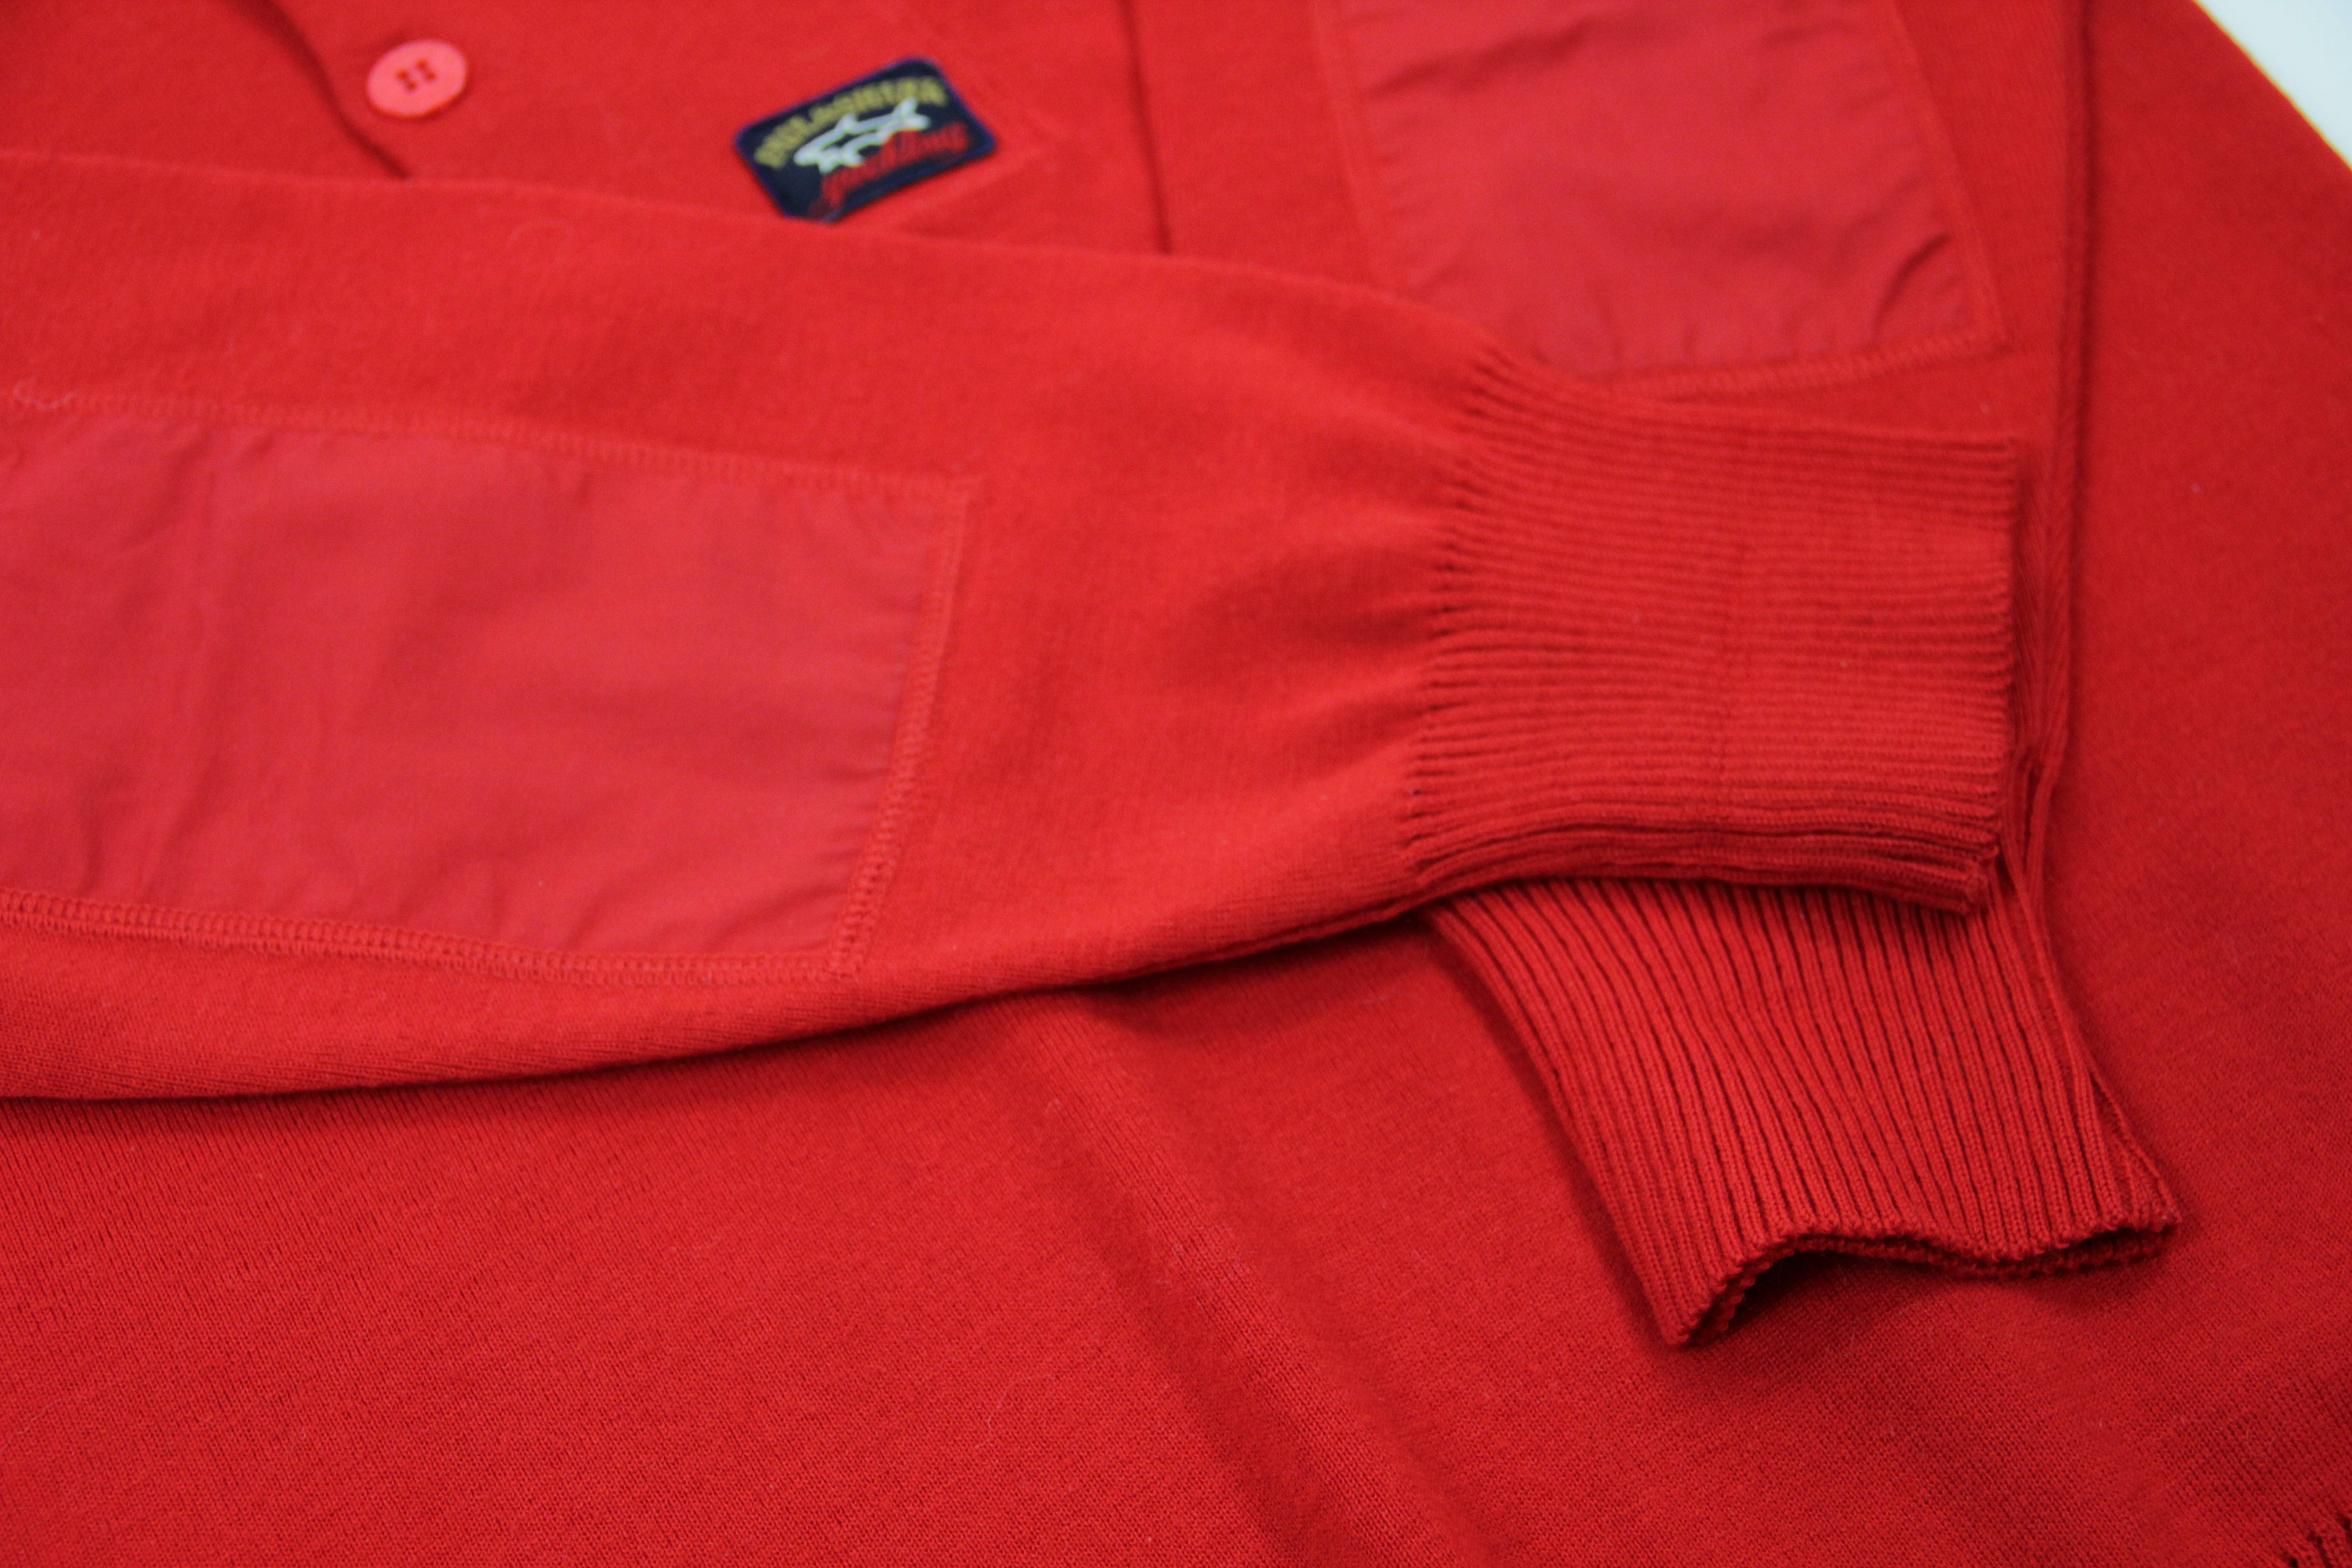 PAUL & SHARK Yachting Men's Red Wool Jumper Sweater